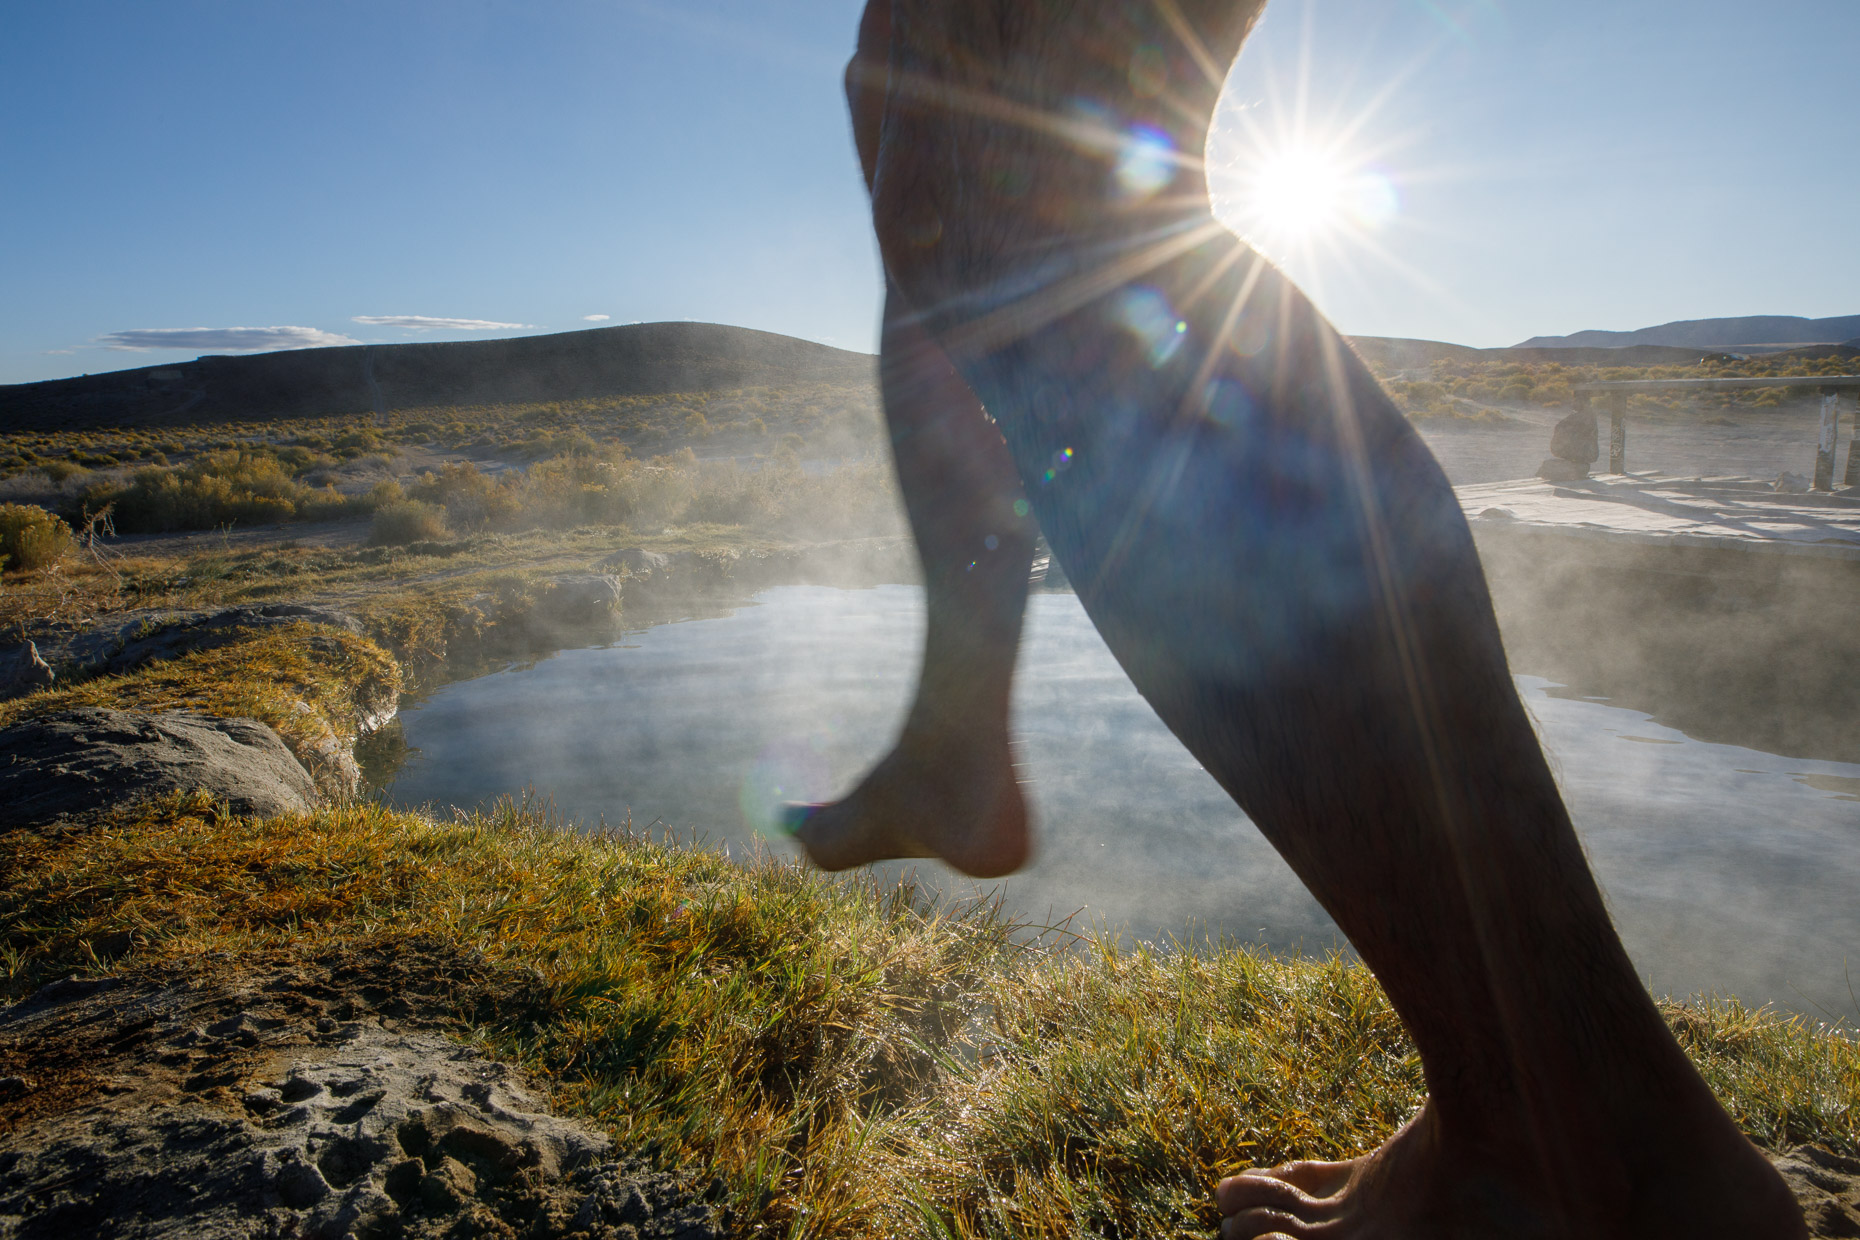 silhouette of legs entering a nevada  hotspring